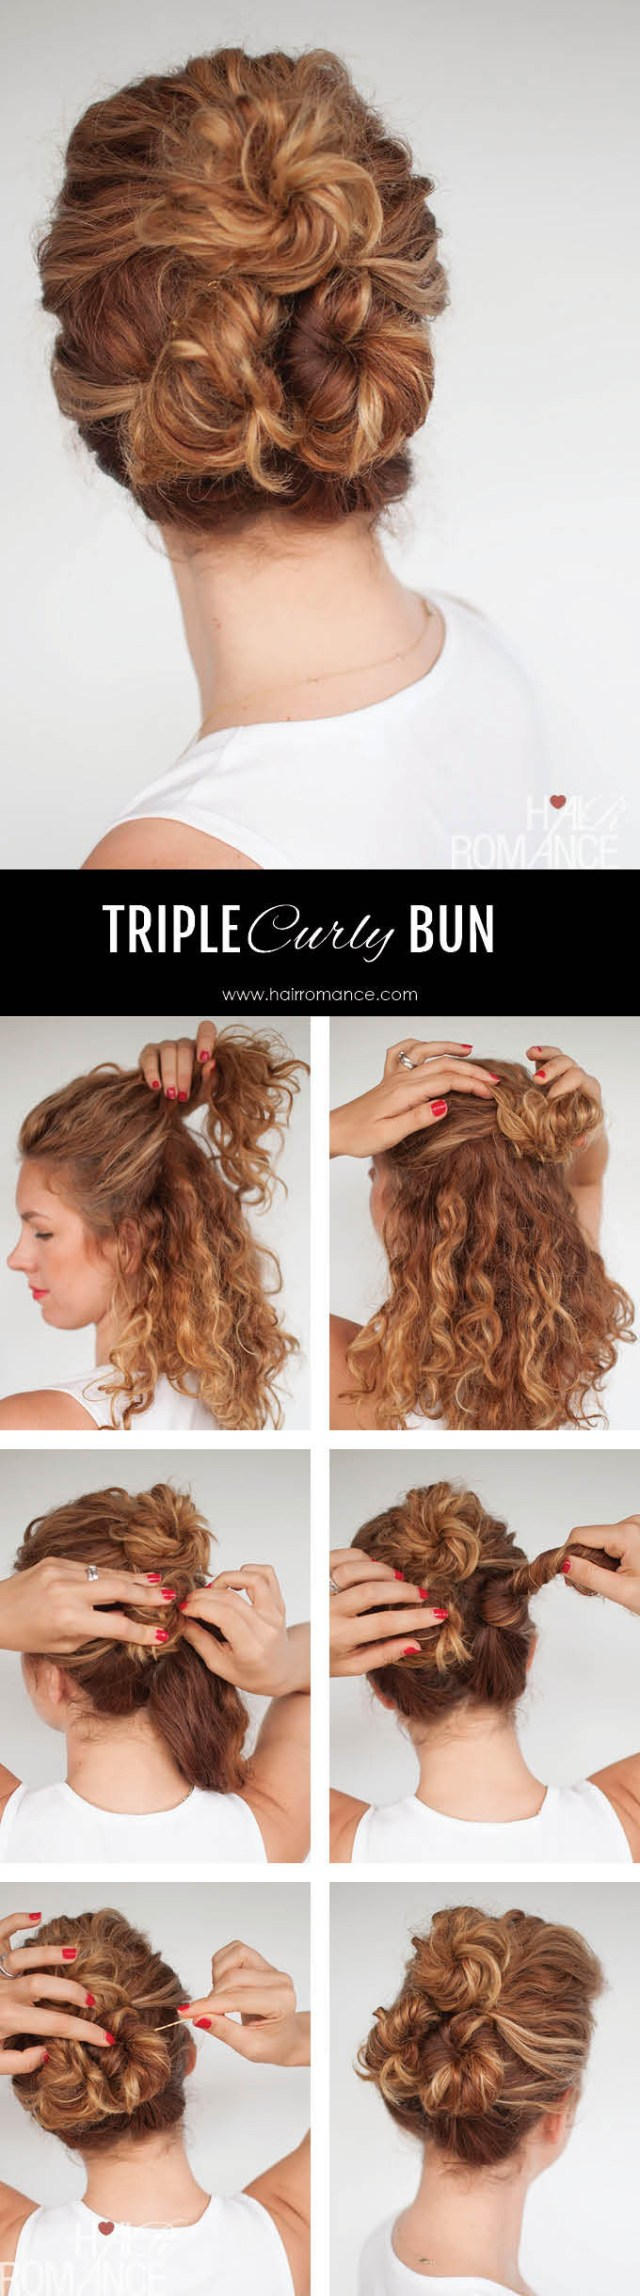 easy everyday curly hairstyle tutorials – the curly triple bun